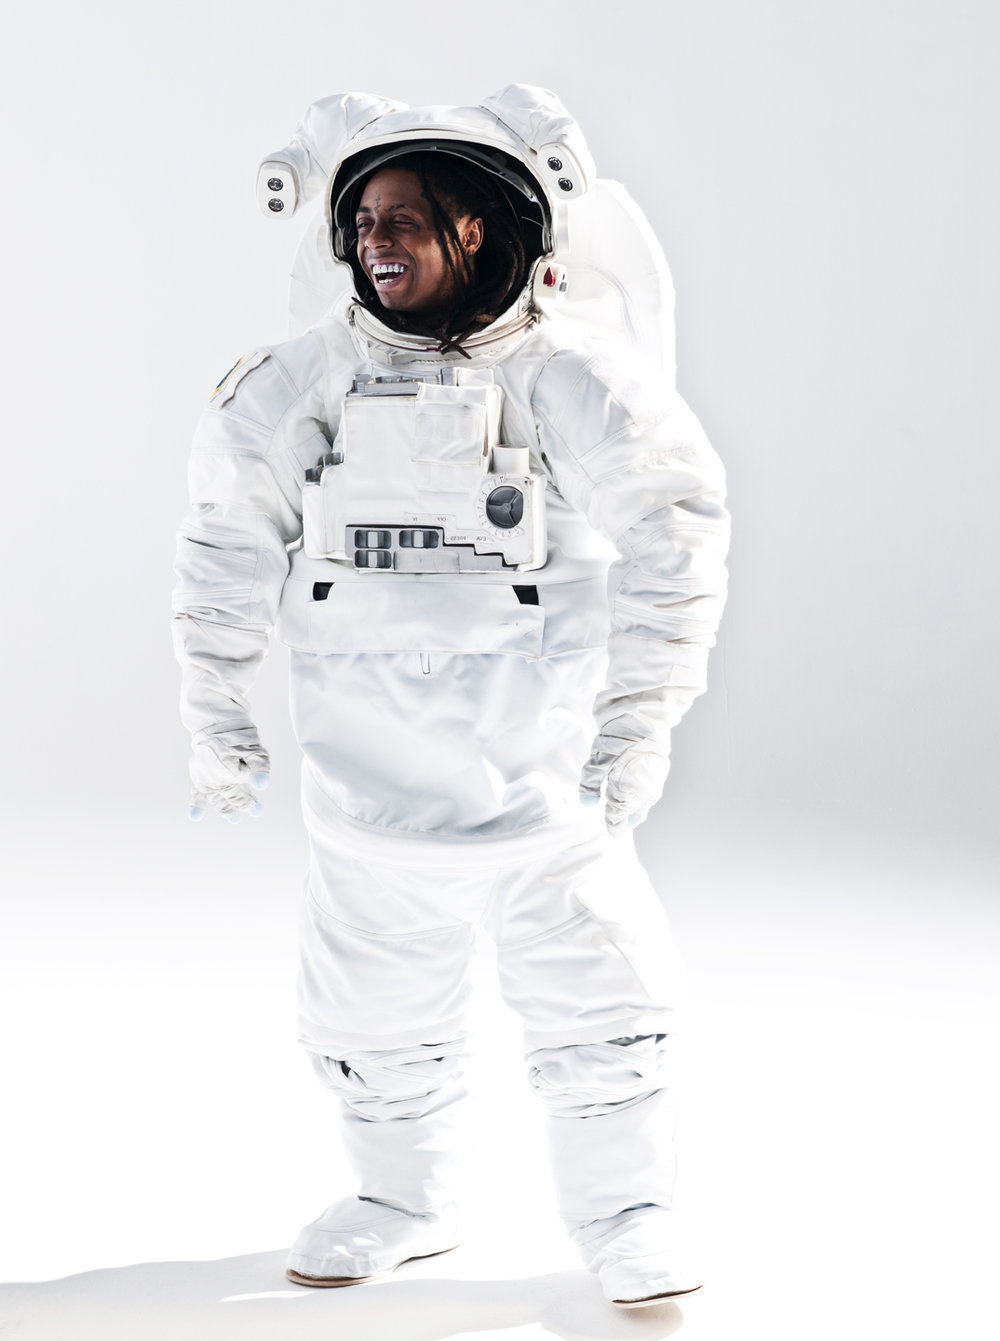 WEB03-01_02_Space_Suit_Miami_085-RT.jpg